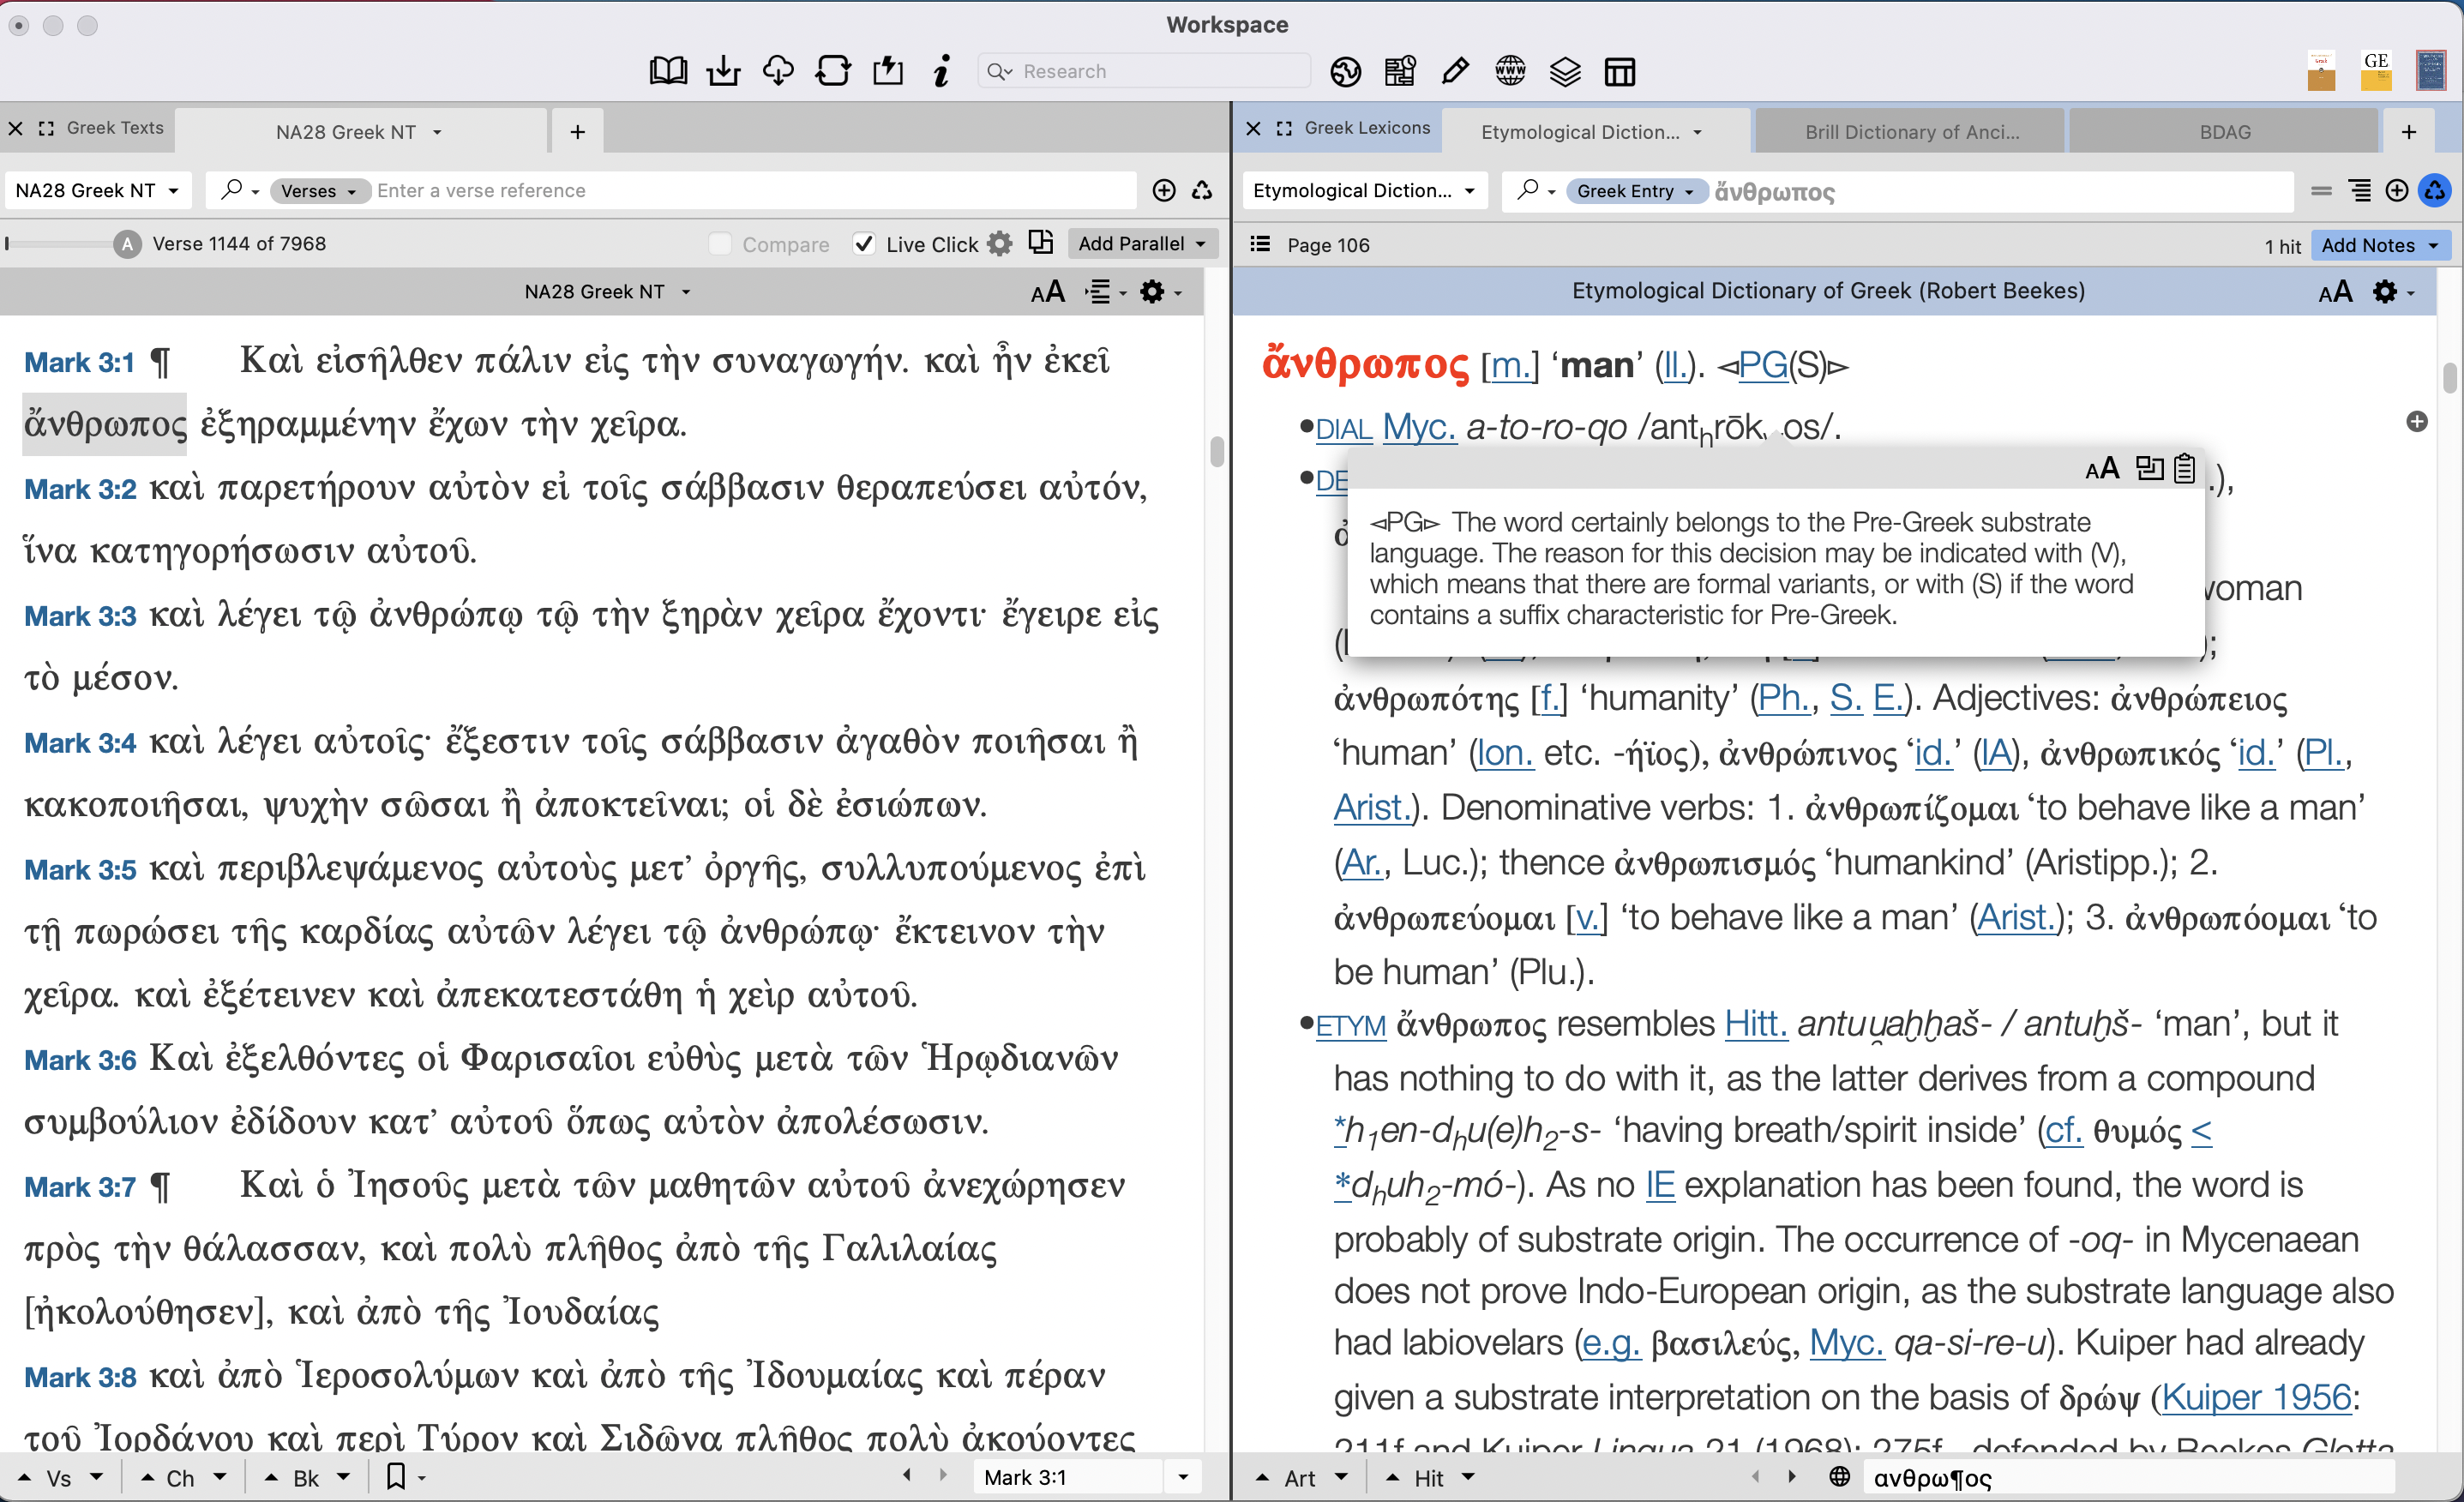 hyperlinked abbreviations for word origin classifications in Beekes